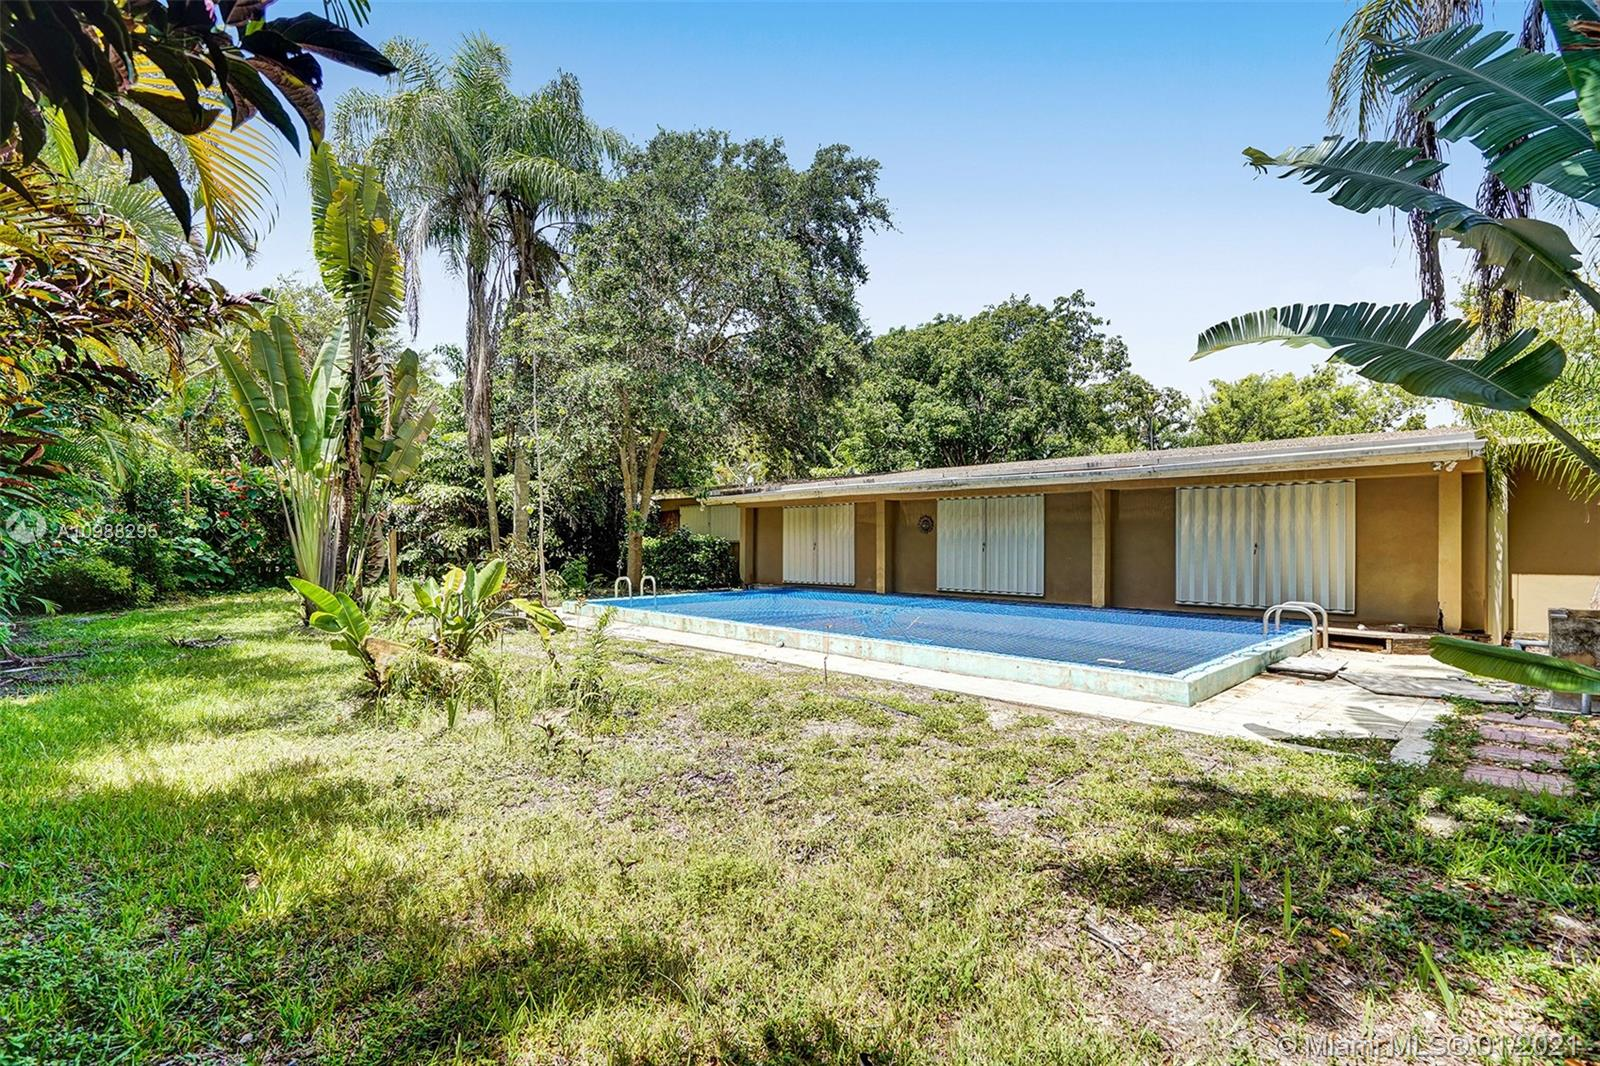 9255 SW 72nd Ave, Pinecrest, Florida 33156, 3 Bedrooms Bedrooms, ,2 BathroomsBathrooms,Residential,For Sale,9255 SW 72nd Ave,A10988295